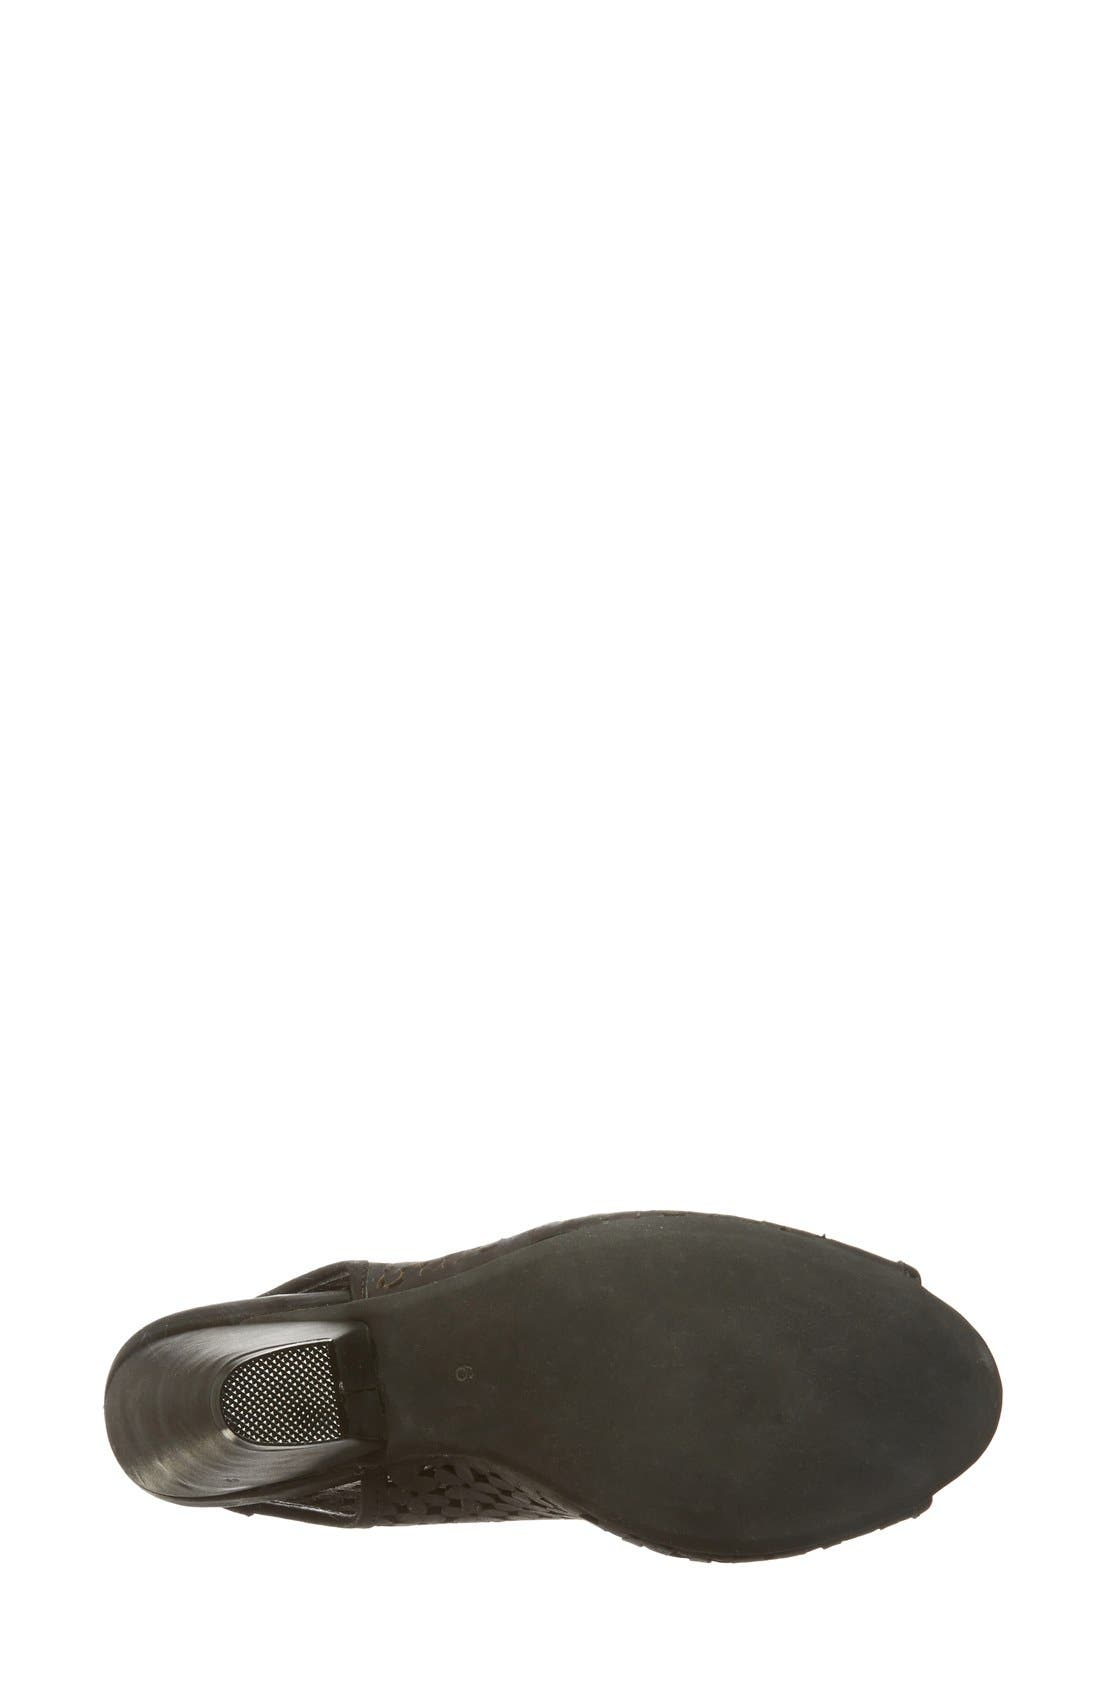 Alternate Image 4  - Jeffrey Campbell 'Premier' Leather Ankle Boot (Women)